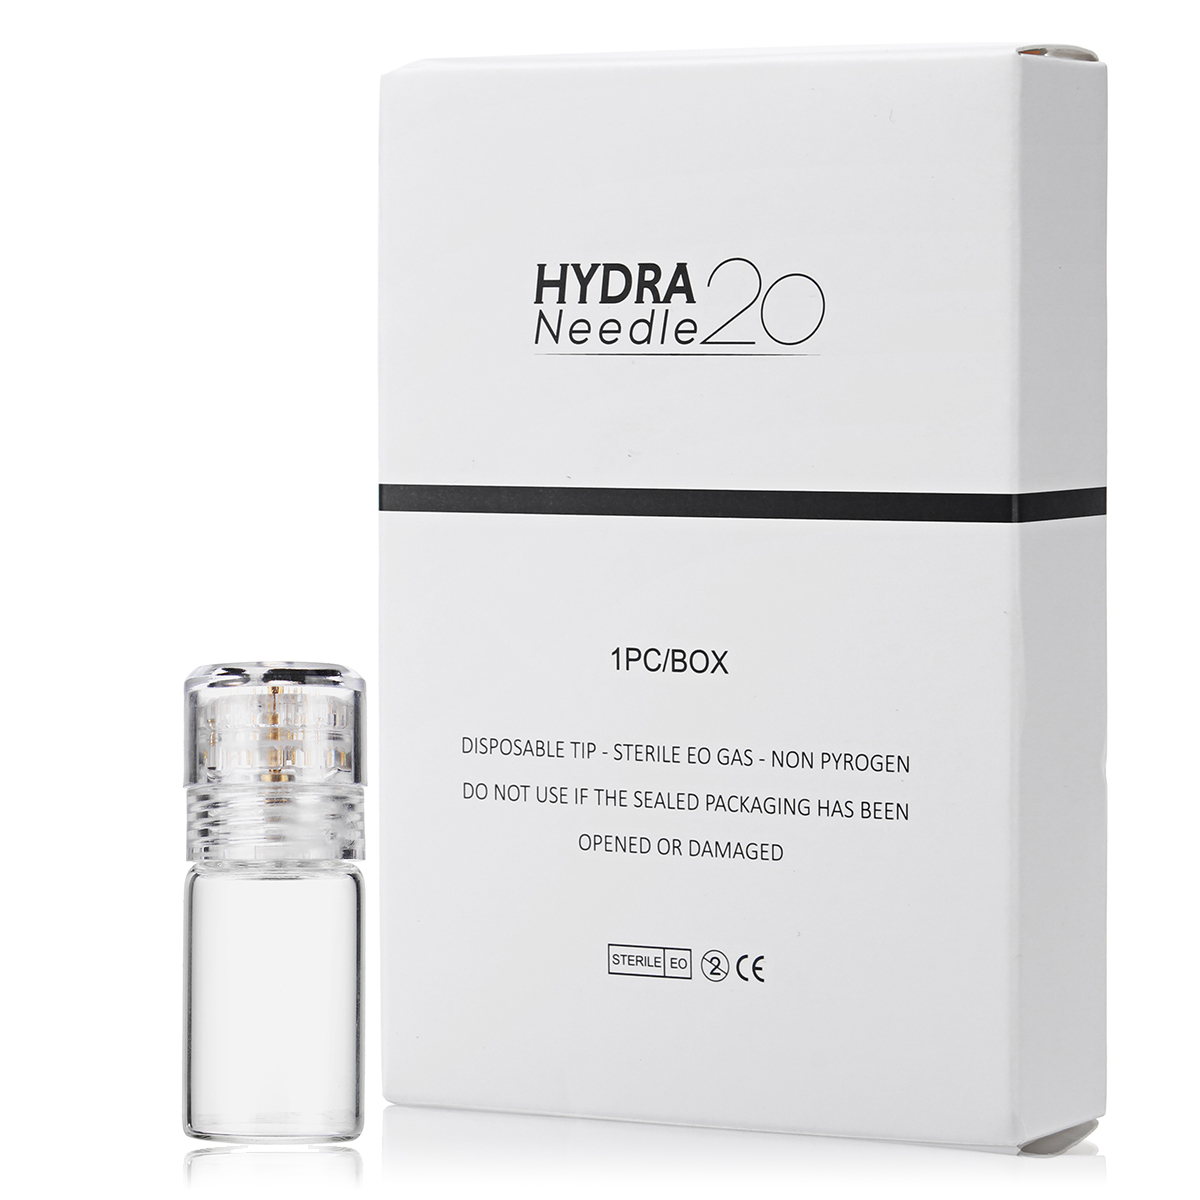 Hydra 20 Titanium Microneedle Applicator Bottle